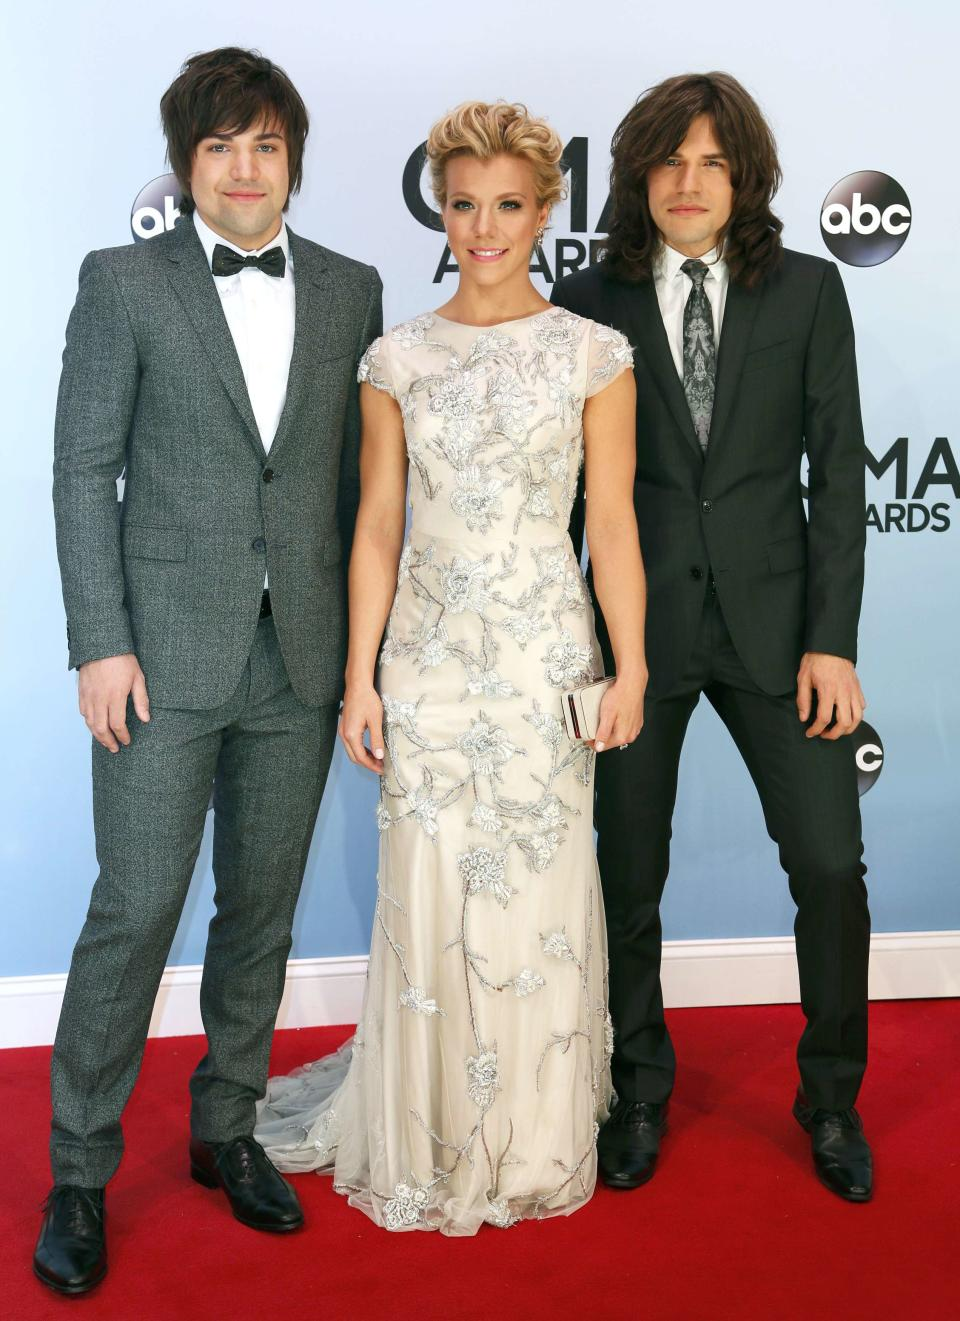 Neil Perry (L), Kimberly Perry and Reid Perry of The Band Perry poses on arrival at the 47th Country Music Association Awards in Nashville, Tennessee November 6, 2013. REUTERS/Eric Henderson (UNITED STATES - Tags: ENTERTAINMENT)